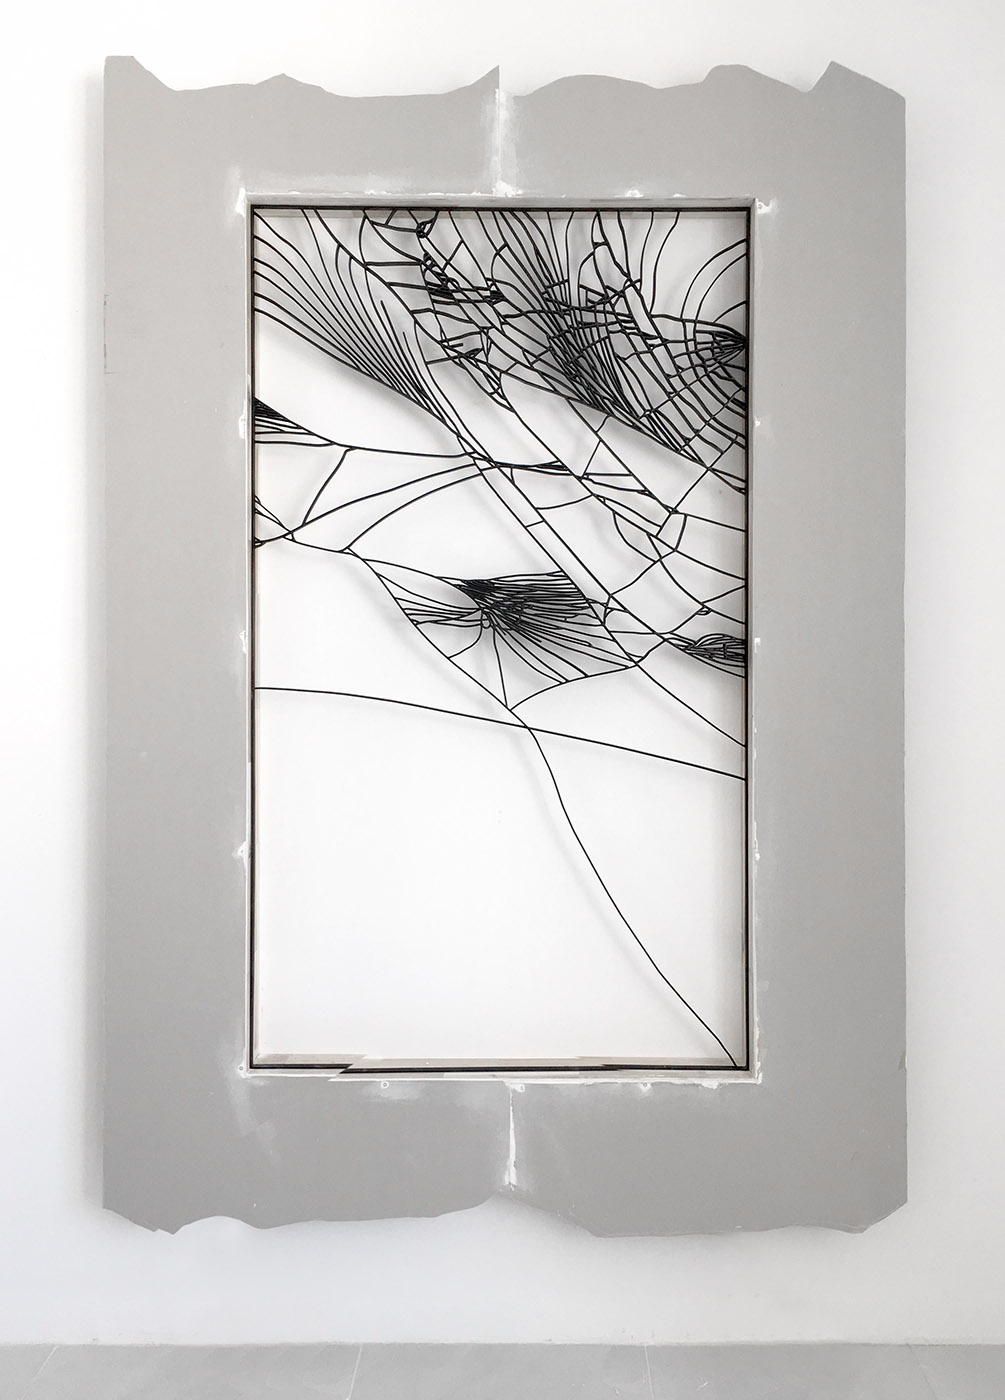 Trong Nguyen,  cracked mobile 01 , 2019, iron, paint, sheetrock, wood, 240 x 165 x 15 cm. Courtesy of the artist and La Patinoire Royale – galerie Valérie Bach.